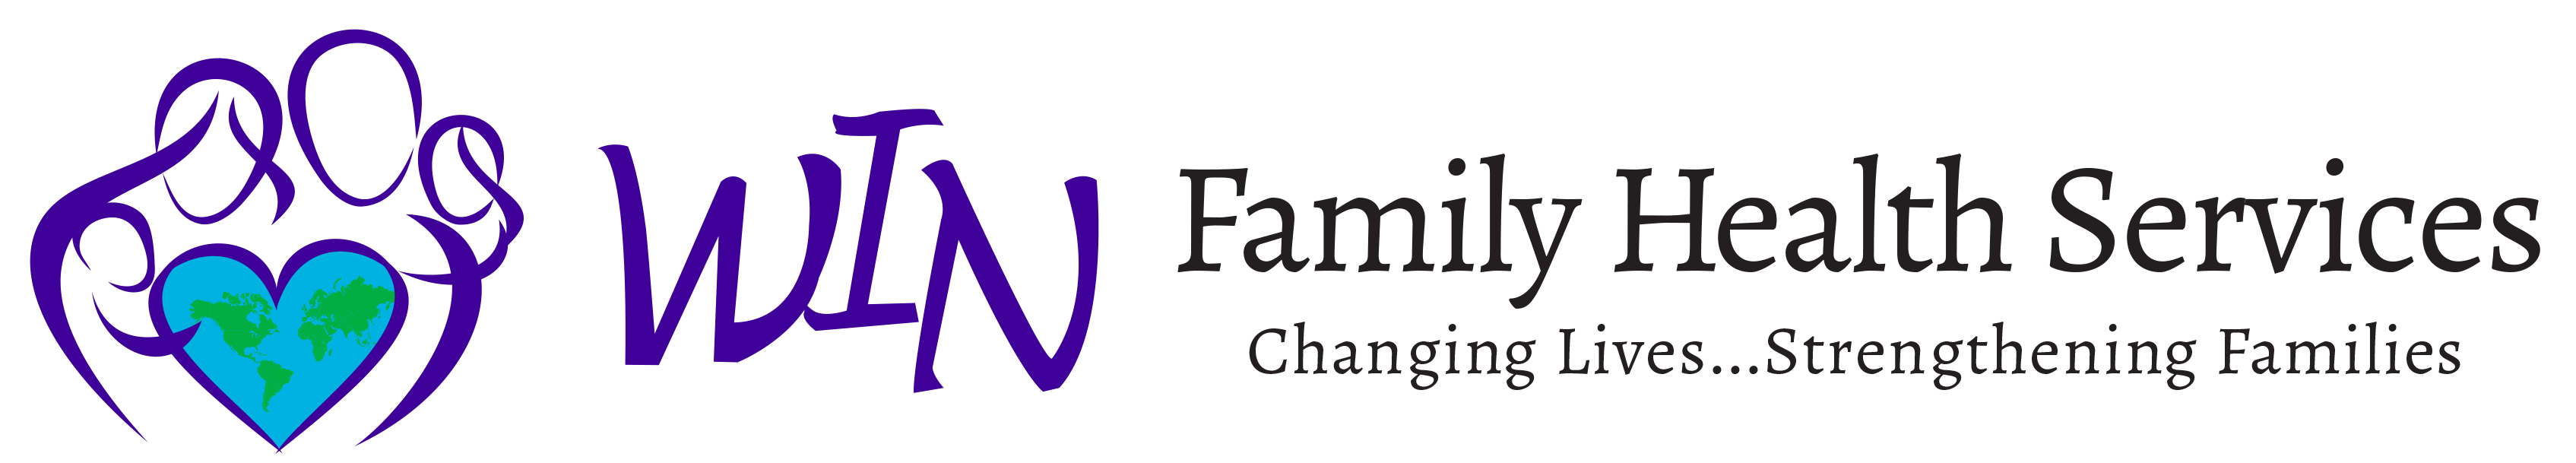 Changing Lives… Strengthening Families